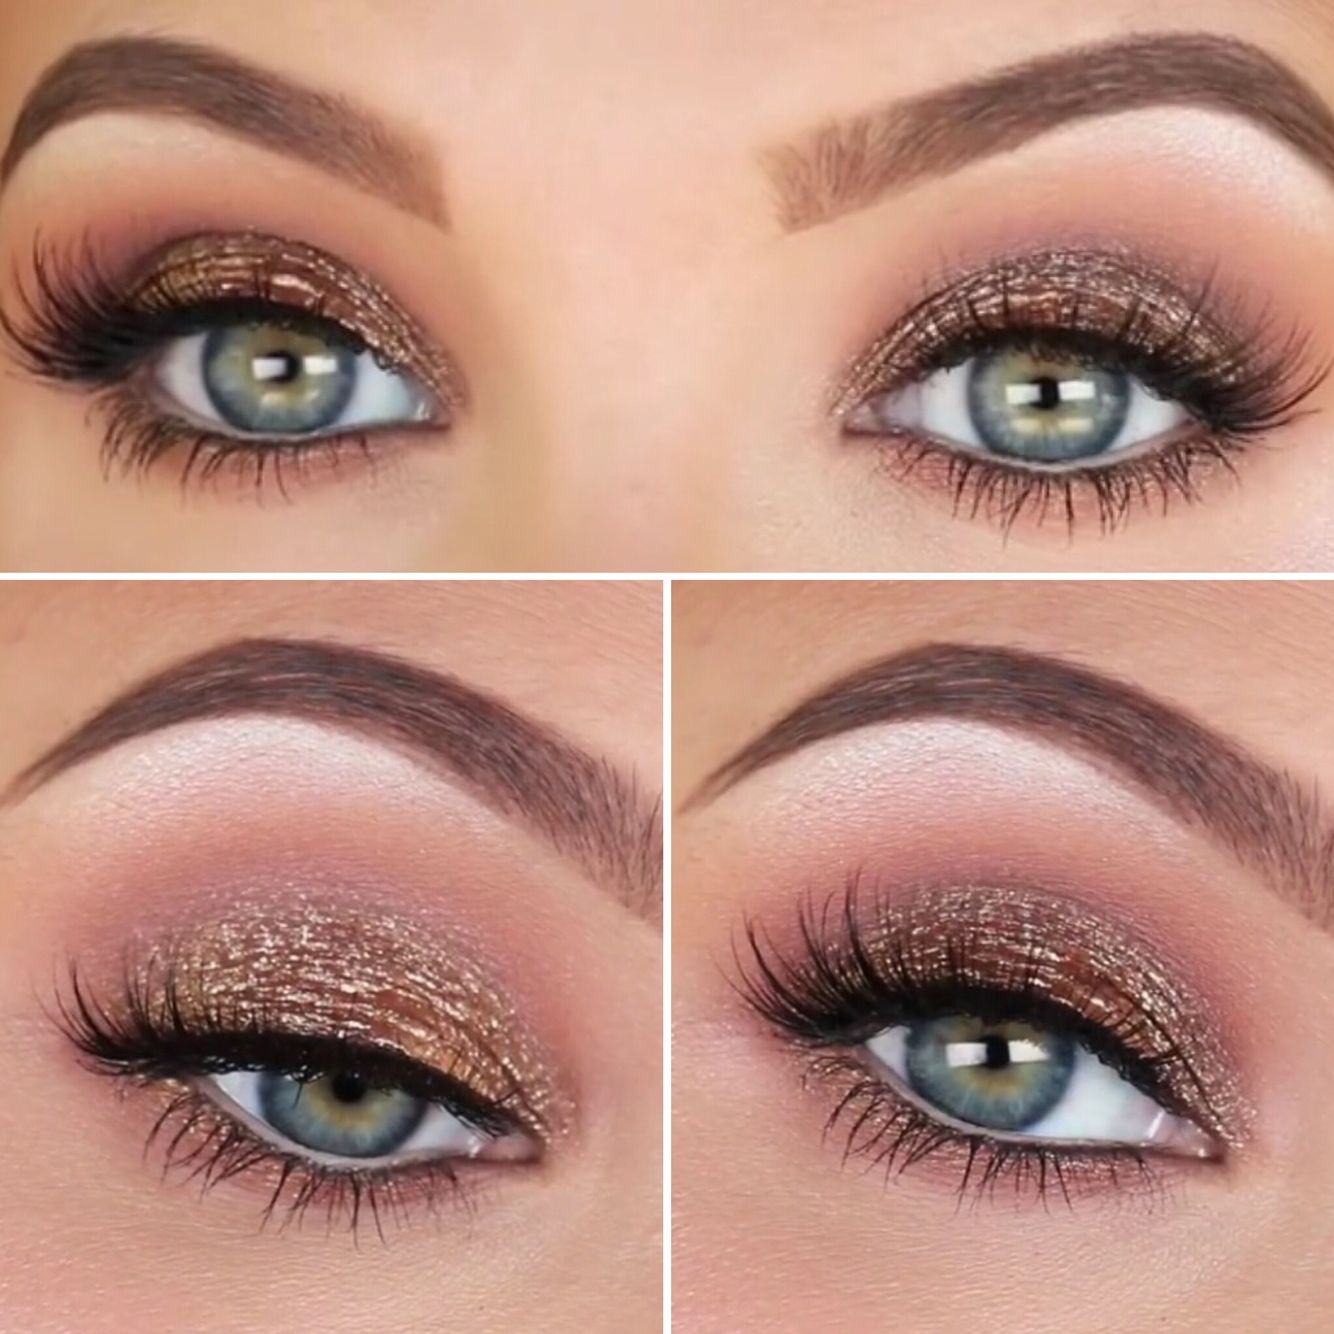 Jaclyn Hill Antique Bronze Smokey eye makeup (colourpop